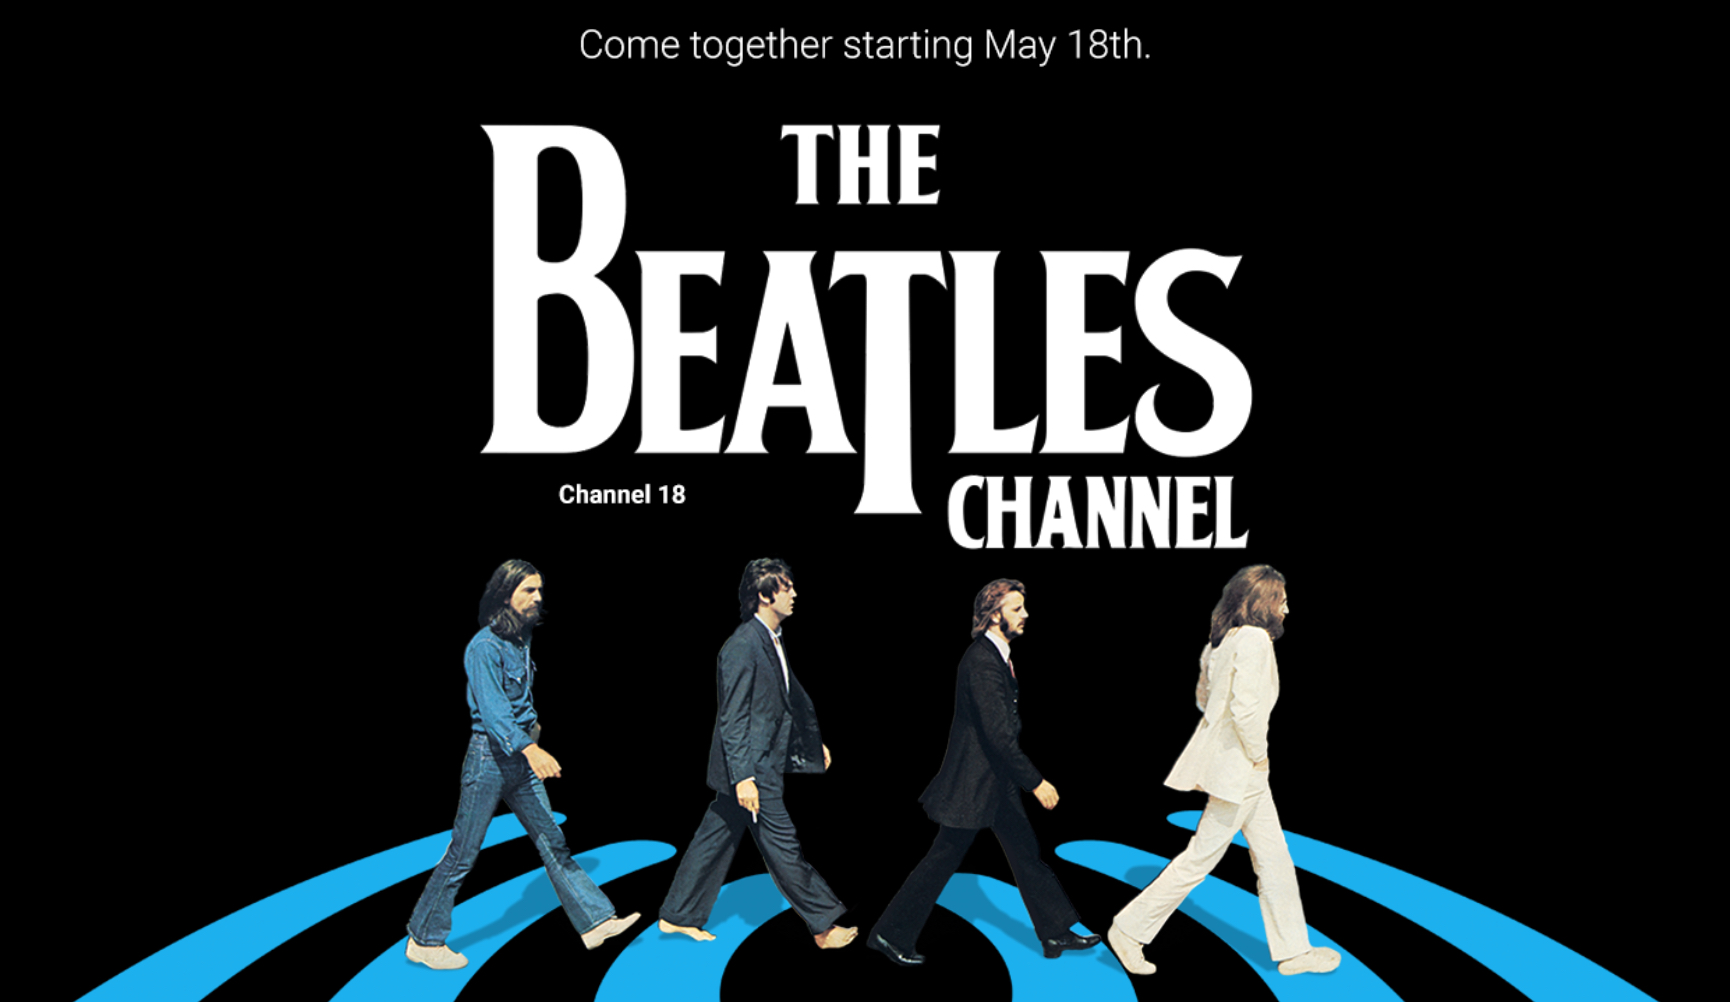 Gmail themes beatles - From The Announcement The Beatles Channel Will Showcase All Things Beatles With Regular And Special Programming Spanning The History Making Careers Of The